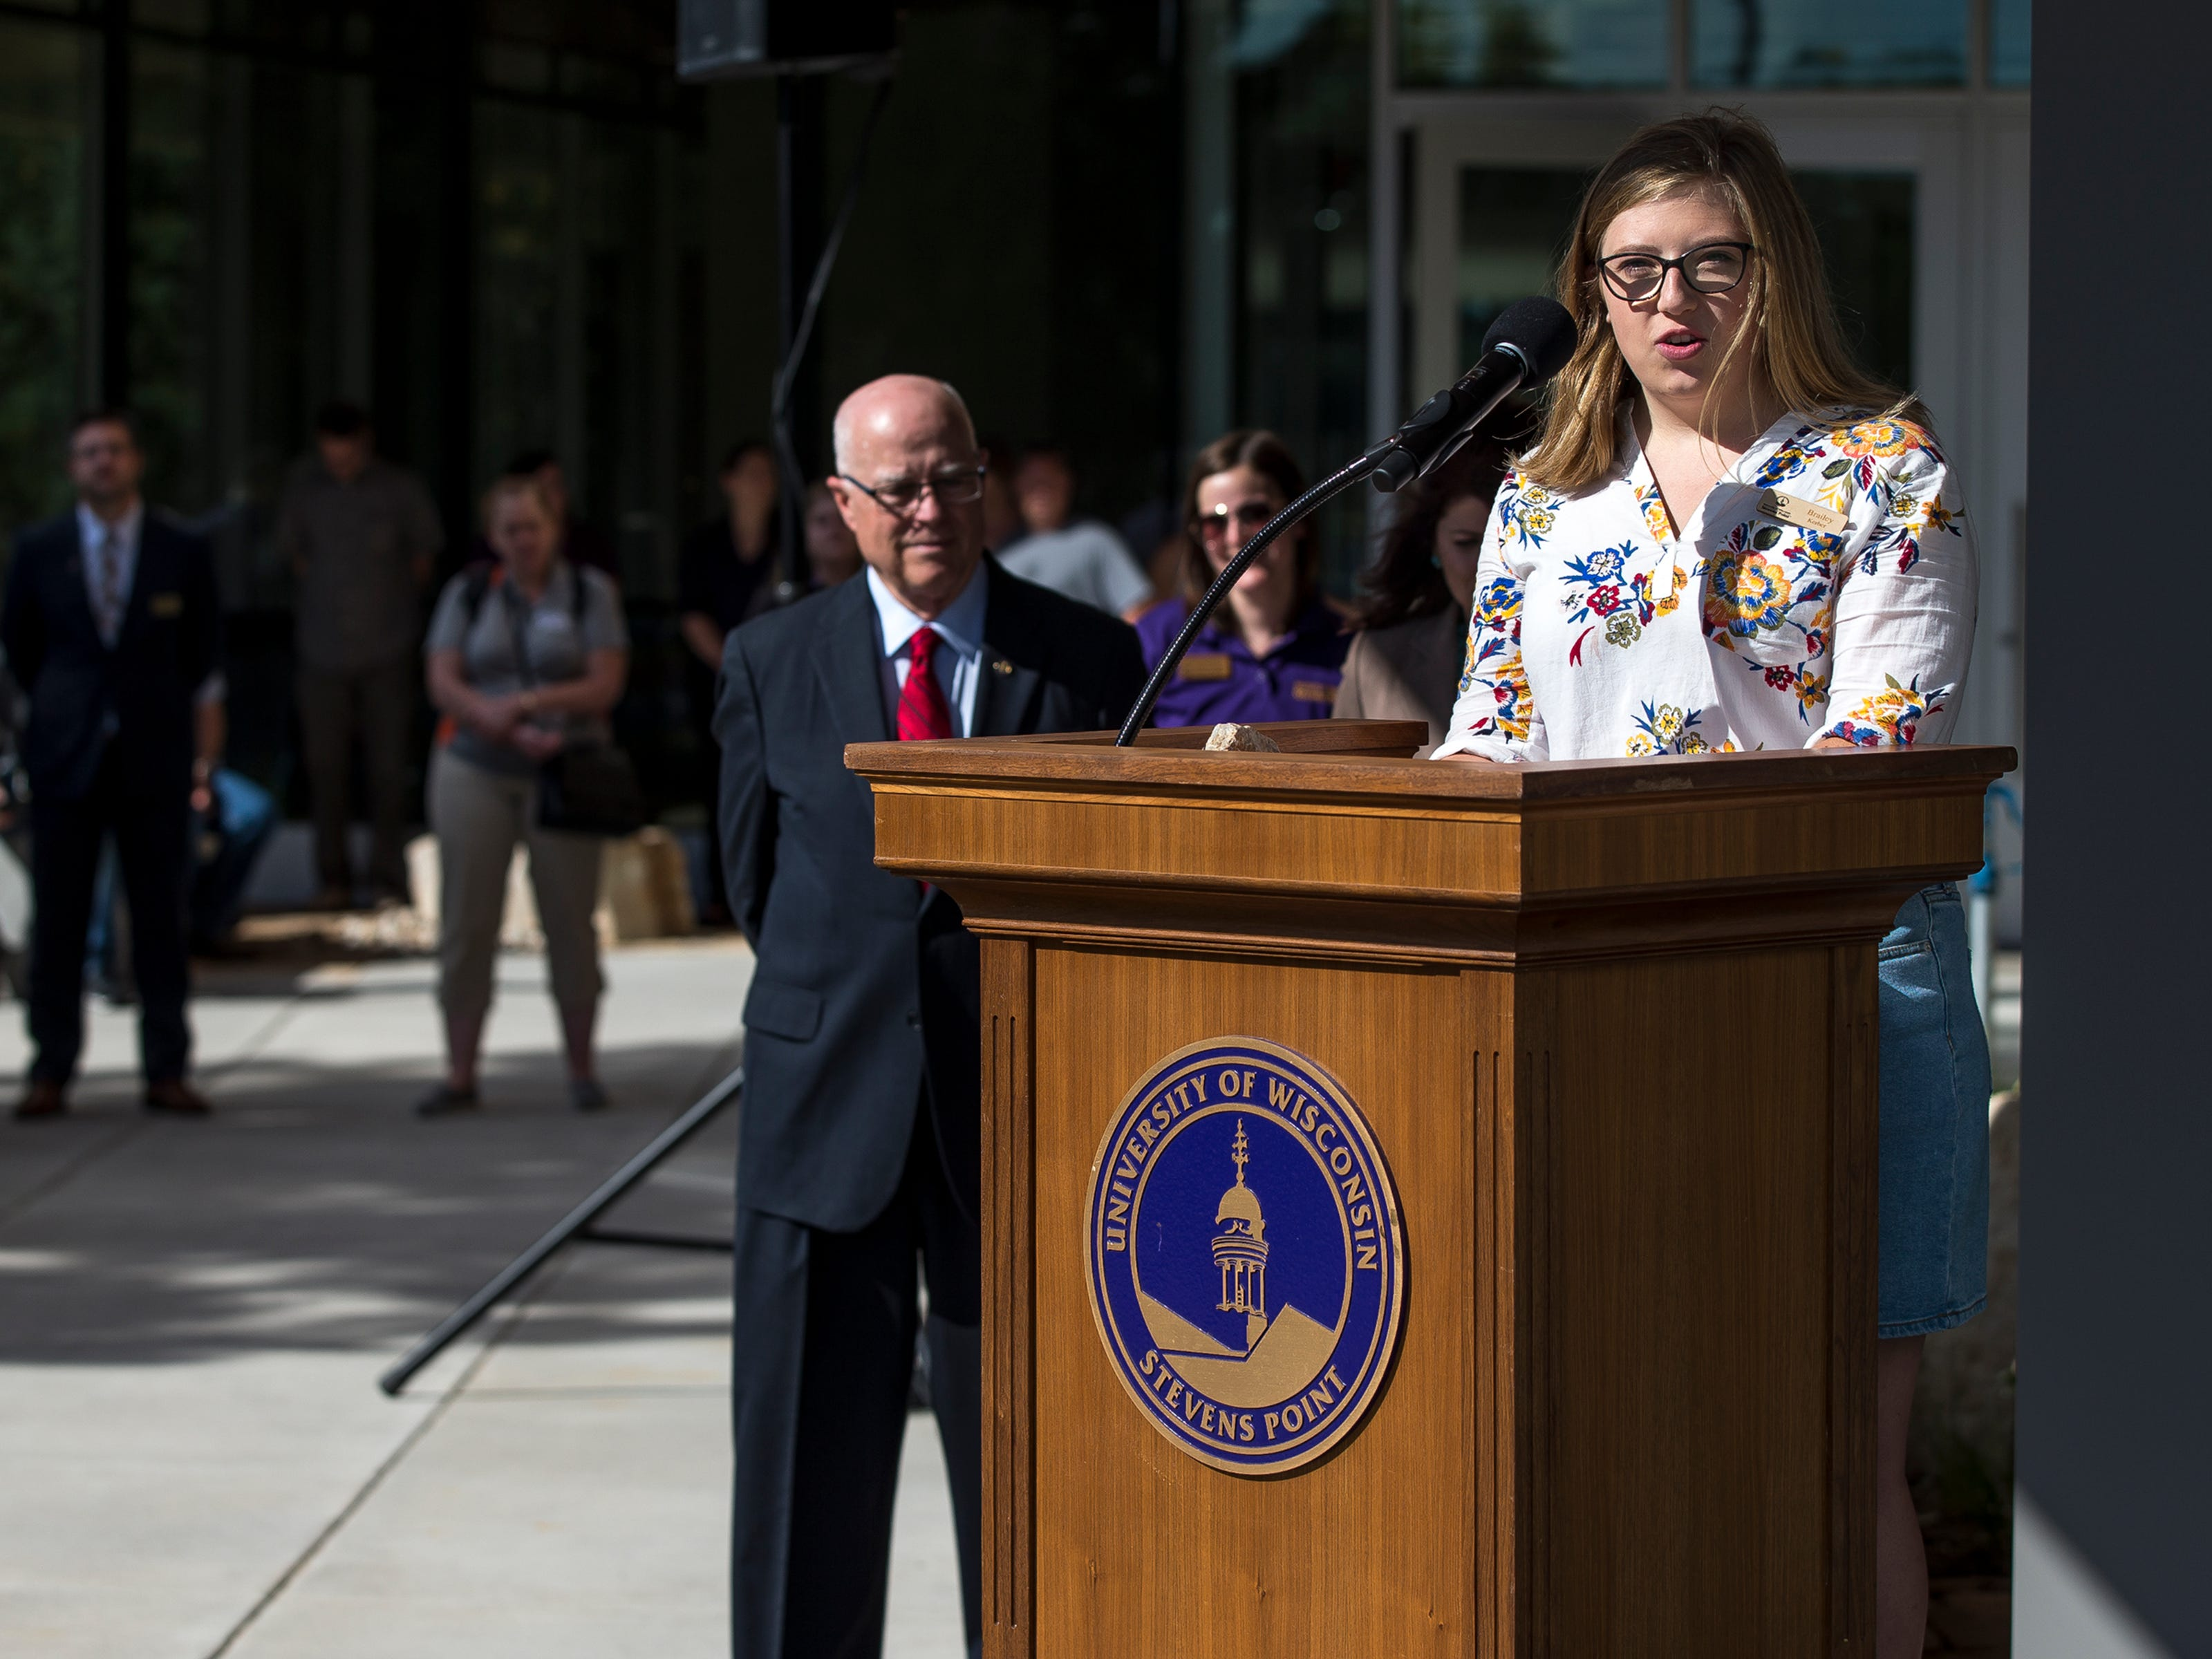 Brailey Kerber, the Student Government Association president, speaks during the opening ceremony for the Chemistry Biology Building at the University of Wisconsin-Stevens Point in Stevens Point, Wis., Sept. 14, 2018.